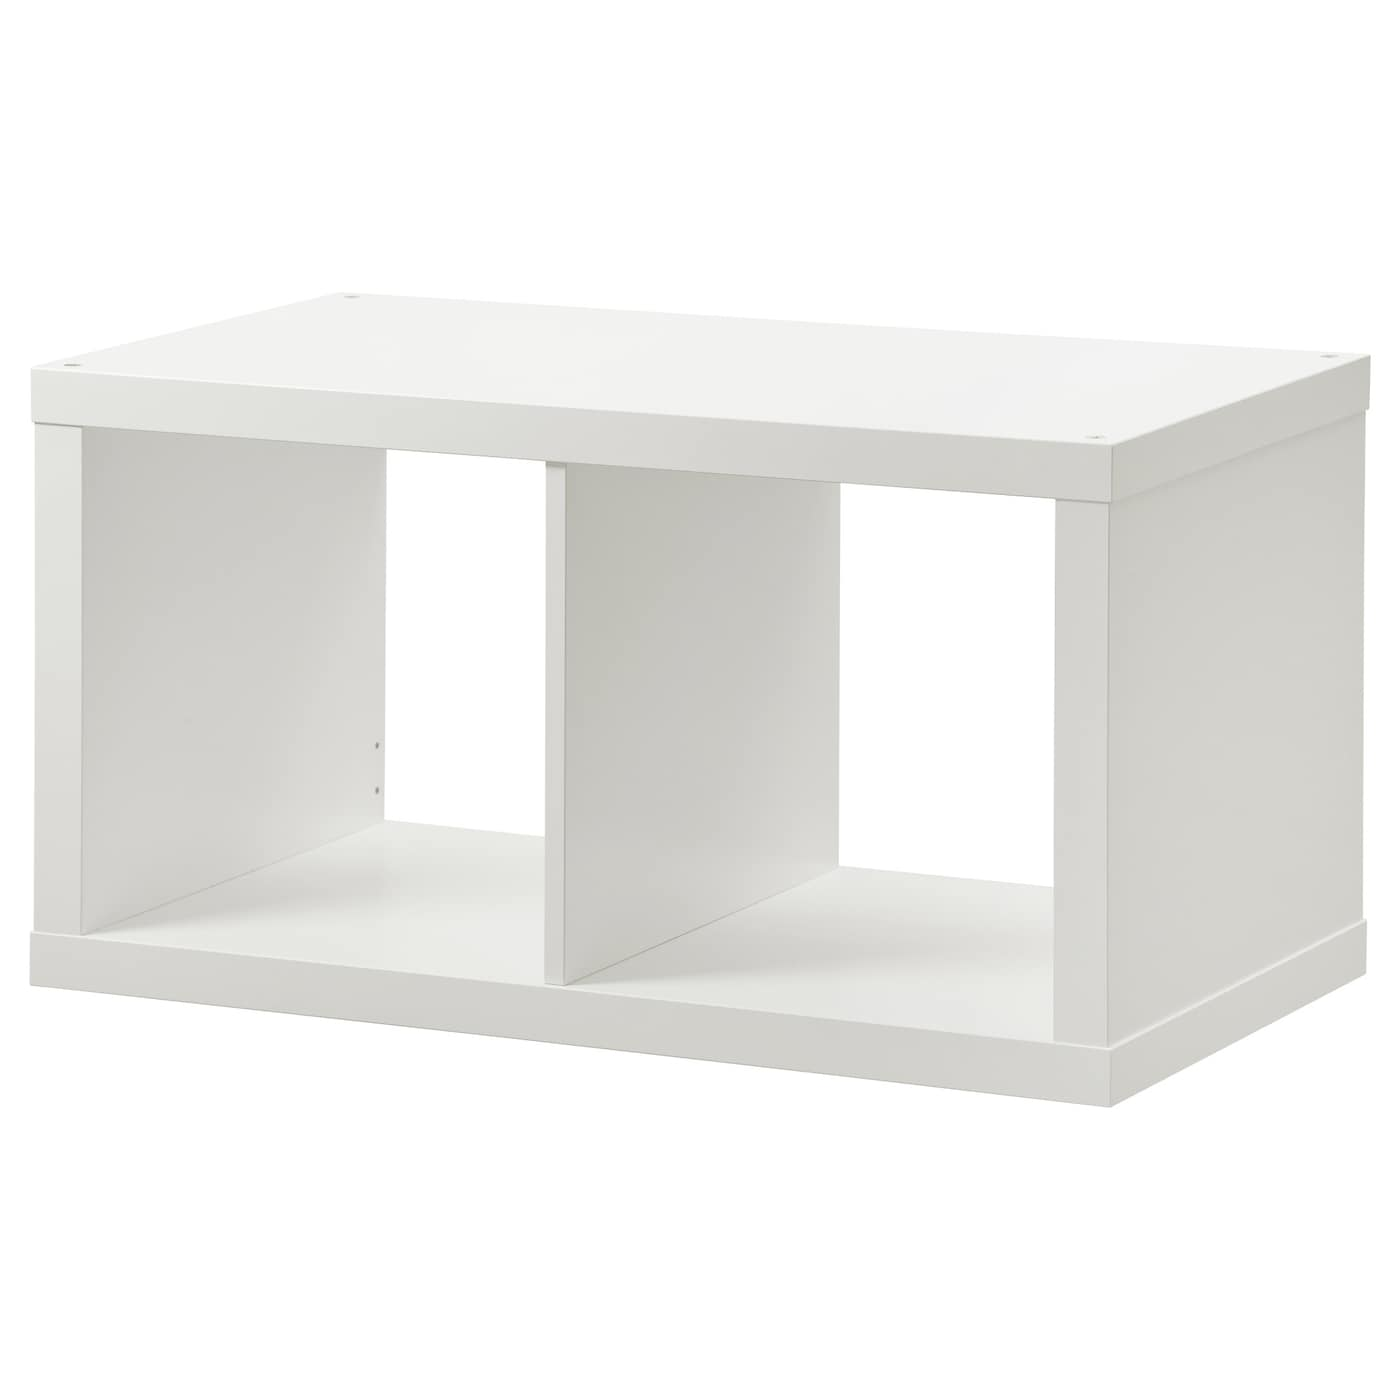 kallax shelving unit white 77 x 42 cm ikea. Black Bedroom Furniture Sets. Home Design Ideas